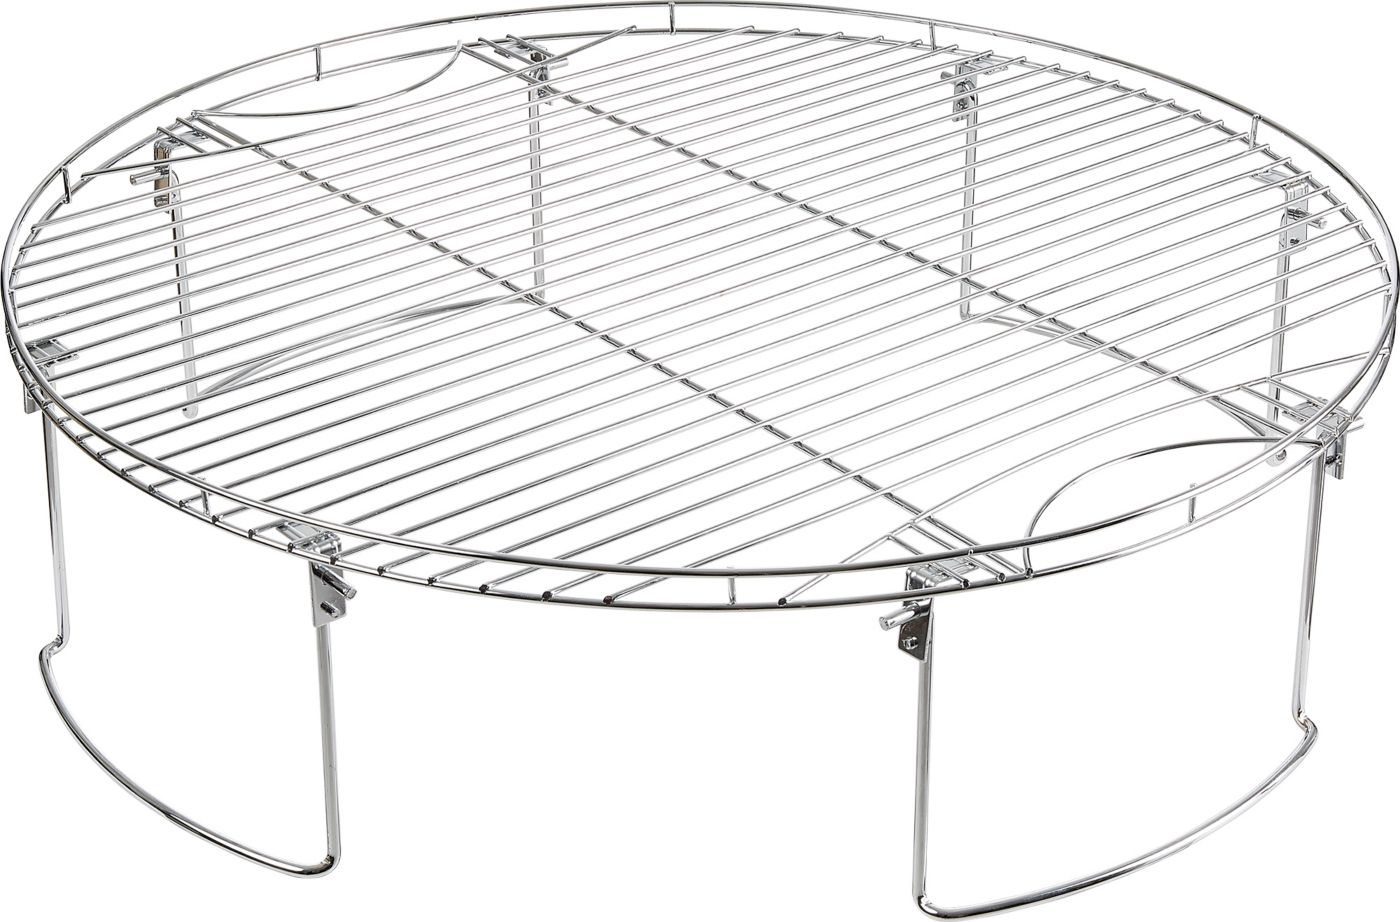 Field & Stream Large Cooking Grate